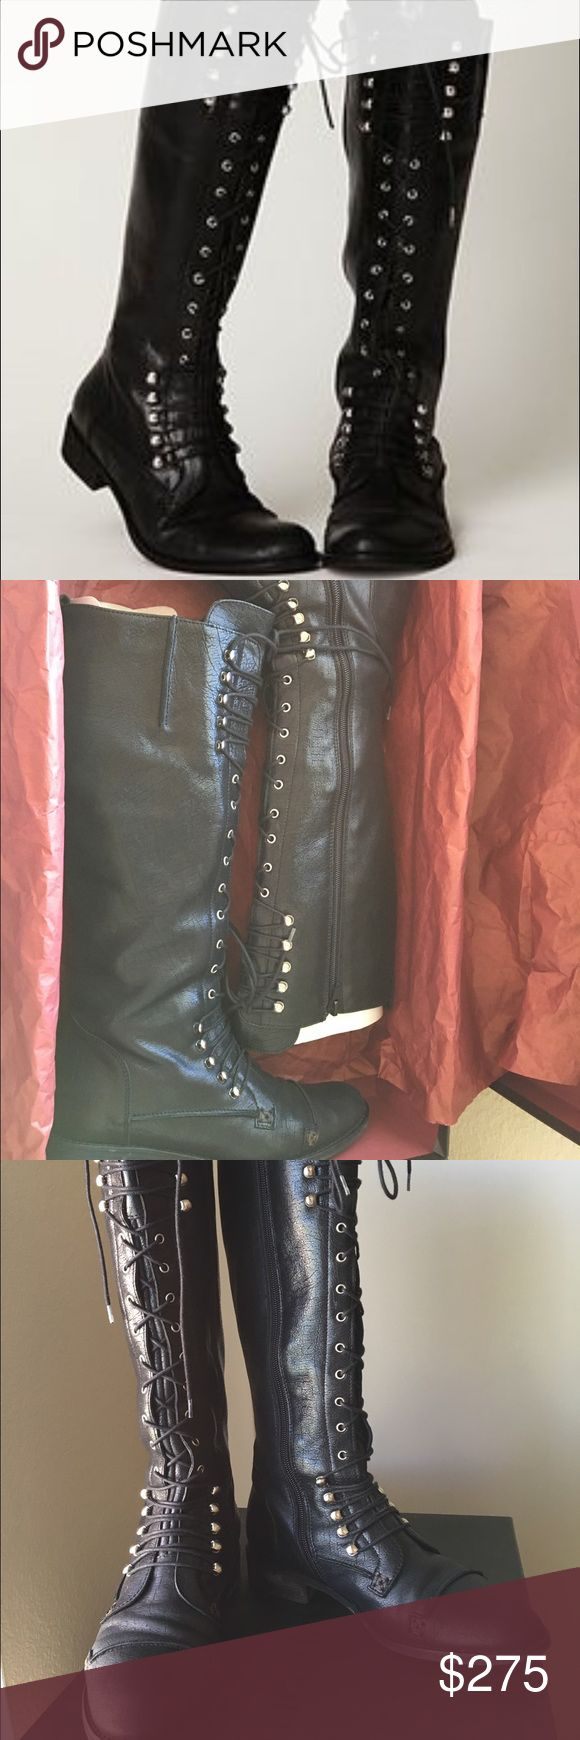 """Free People """"Registry""""  boots by Charles David Gorgeous, rare find featured on Free People by Charles David. Originally retailed at $495 and are very hard to find. Only worn them a few times. The boots remain in excellent condition. Very minimum signs of wear. ‼️Please note, they are marked as size 5 but they run a bit large. They could possibly fit a size 5 1/2 to 6 with NARROW FEET ONLY‼️ 🚫No trades🚫 Details: - Round toe - Lace-up vamp - Zip side closure - Approx. 1"""" heel - Made in Italy…"""